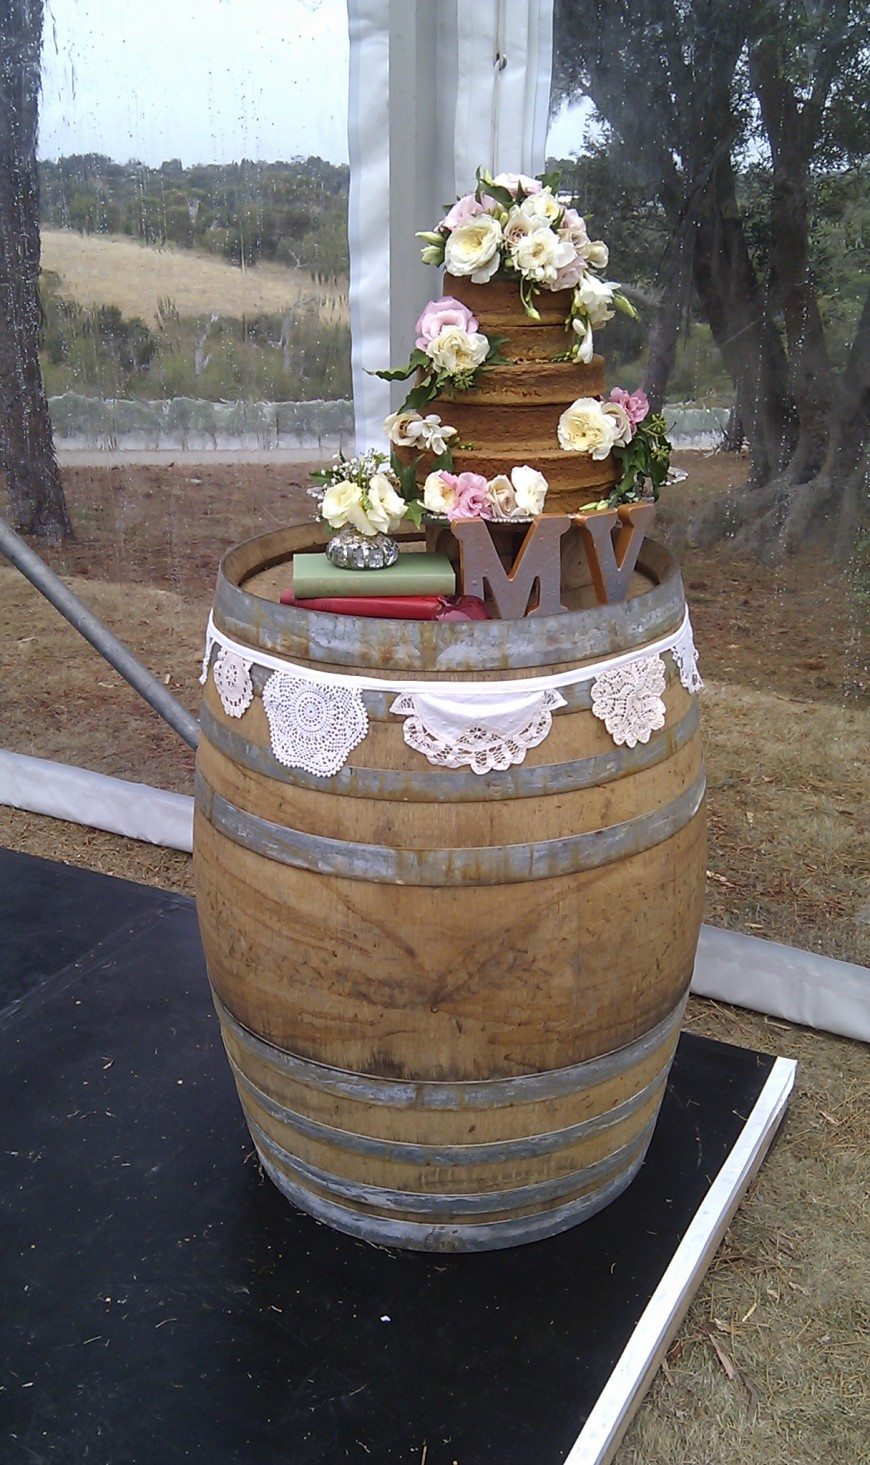 The Wedding Cake Stand